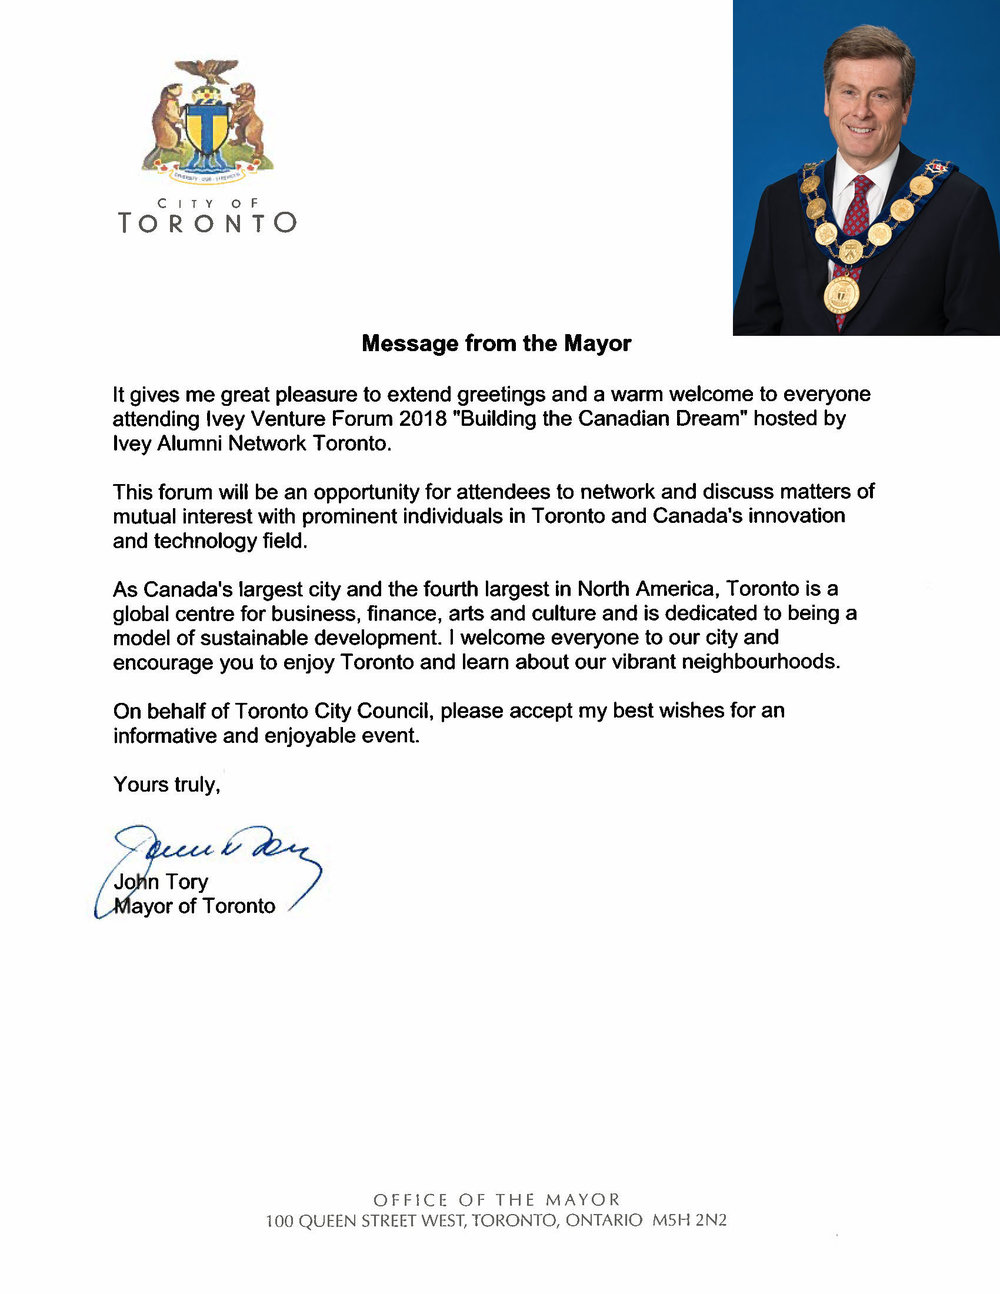 Letter+from+Mayor+Tory+to+Ivey+Venture+Forum.jpeg